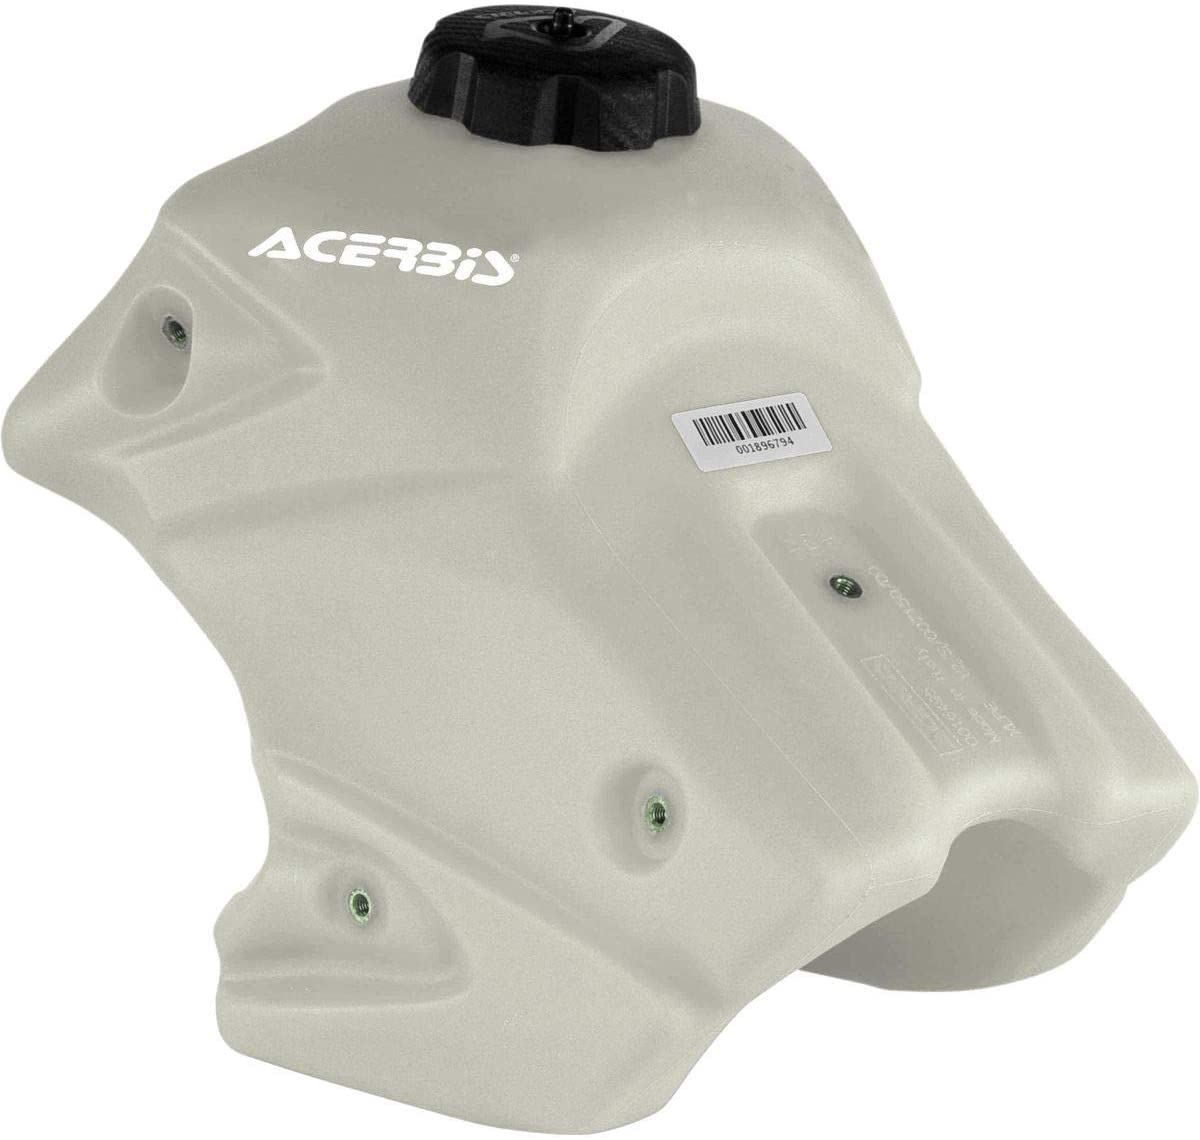 Acerbis Gas Tank (1.7 Gallons) (Natural) for 07-19 Honda CRF150R